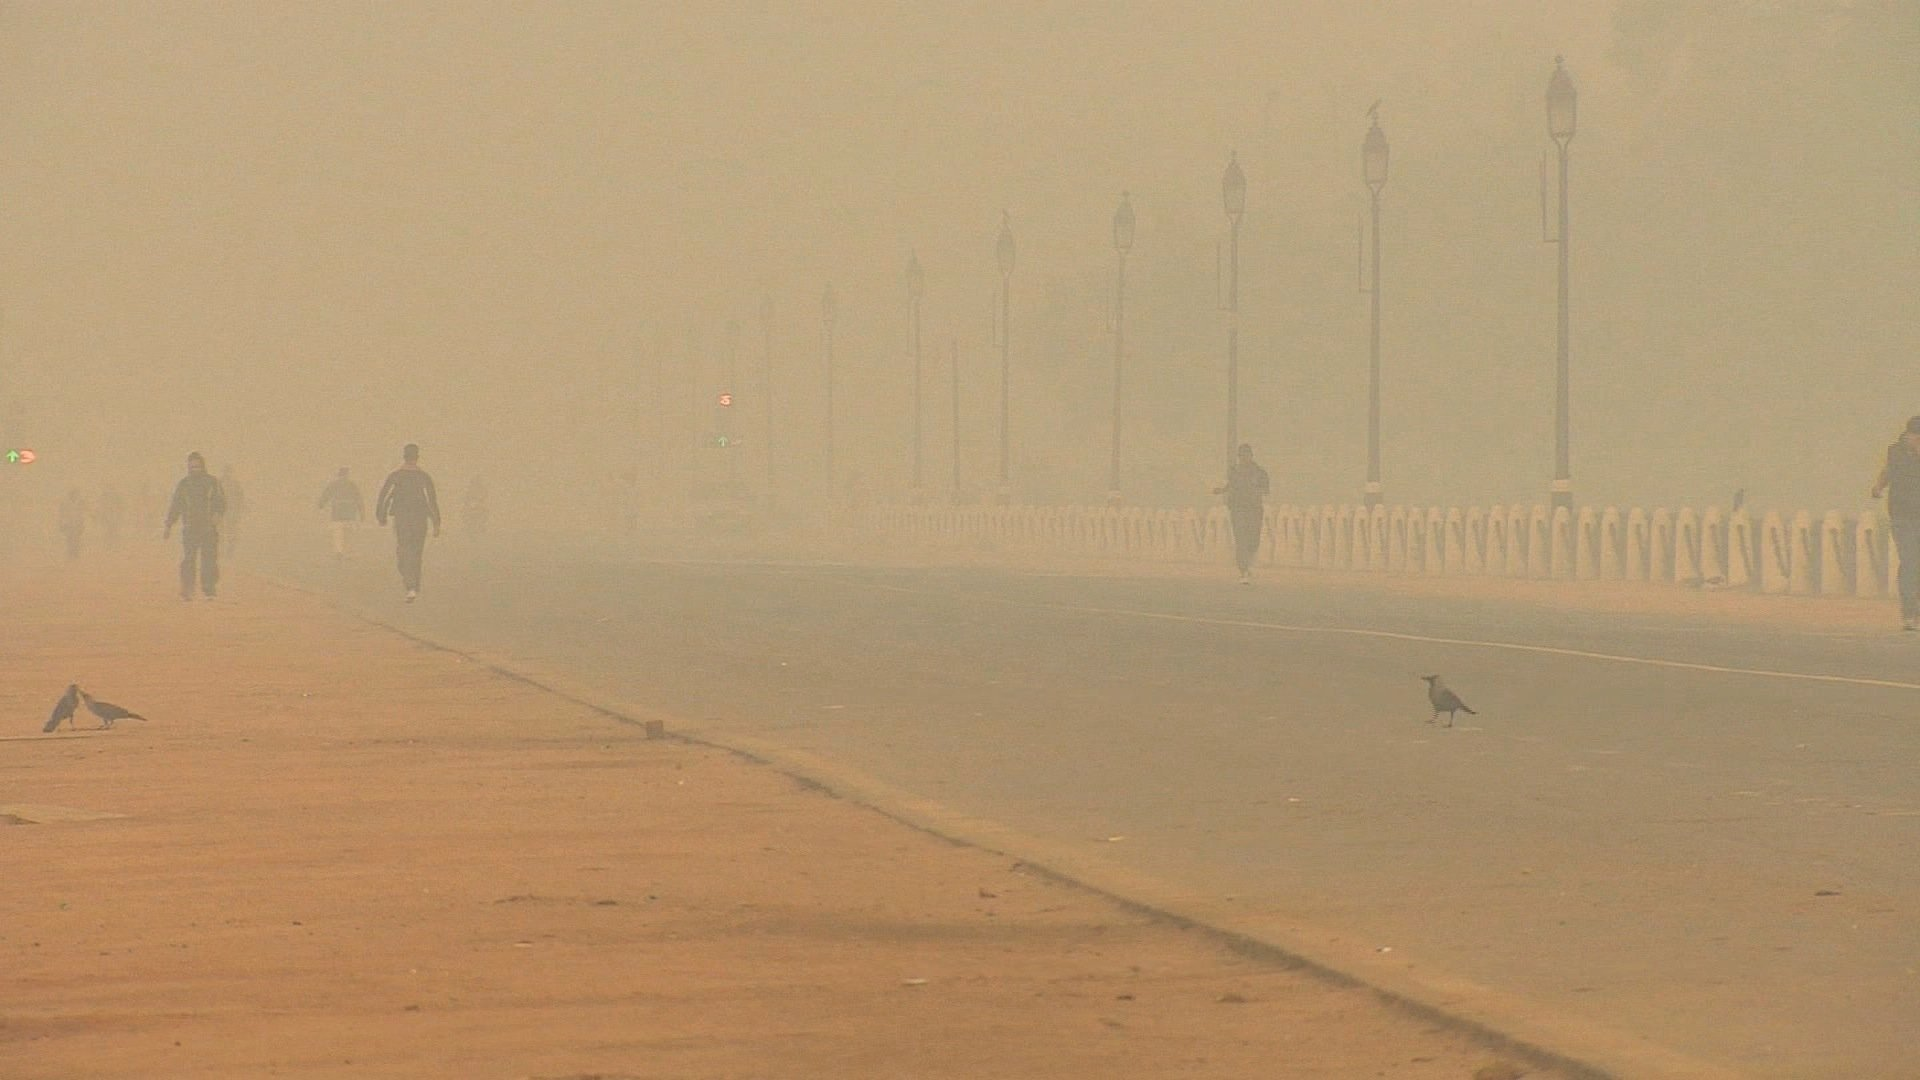 Breathing in Delhi air equivalent to smoking 44 cigarettes a day.